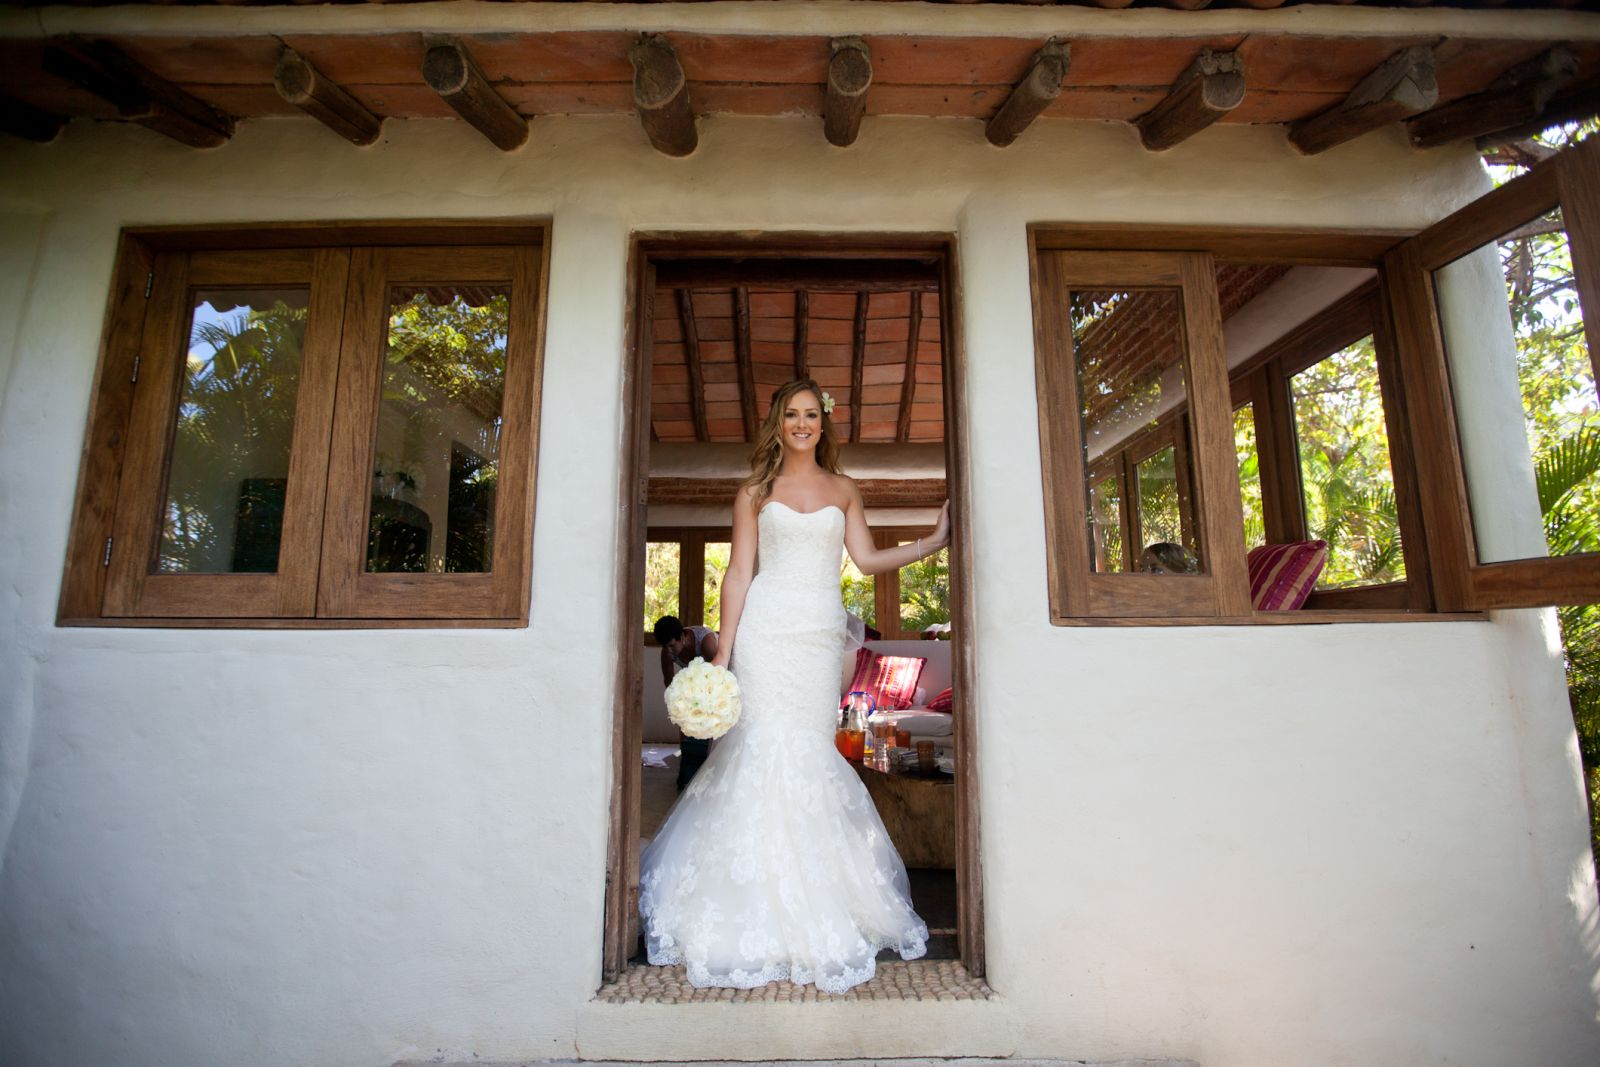 Ready for the big moment at the bridal suite.